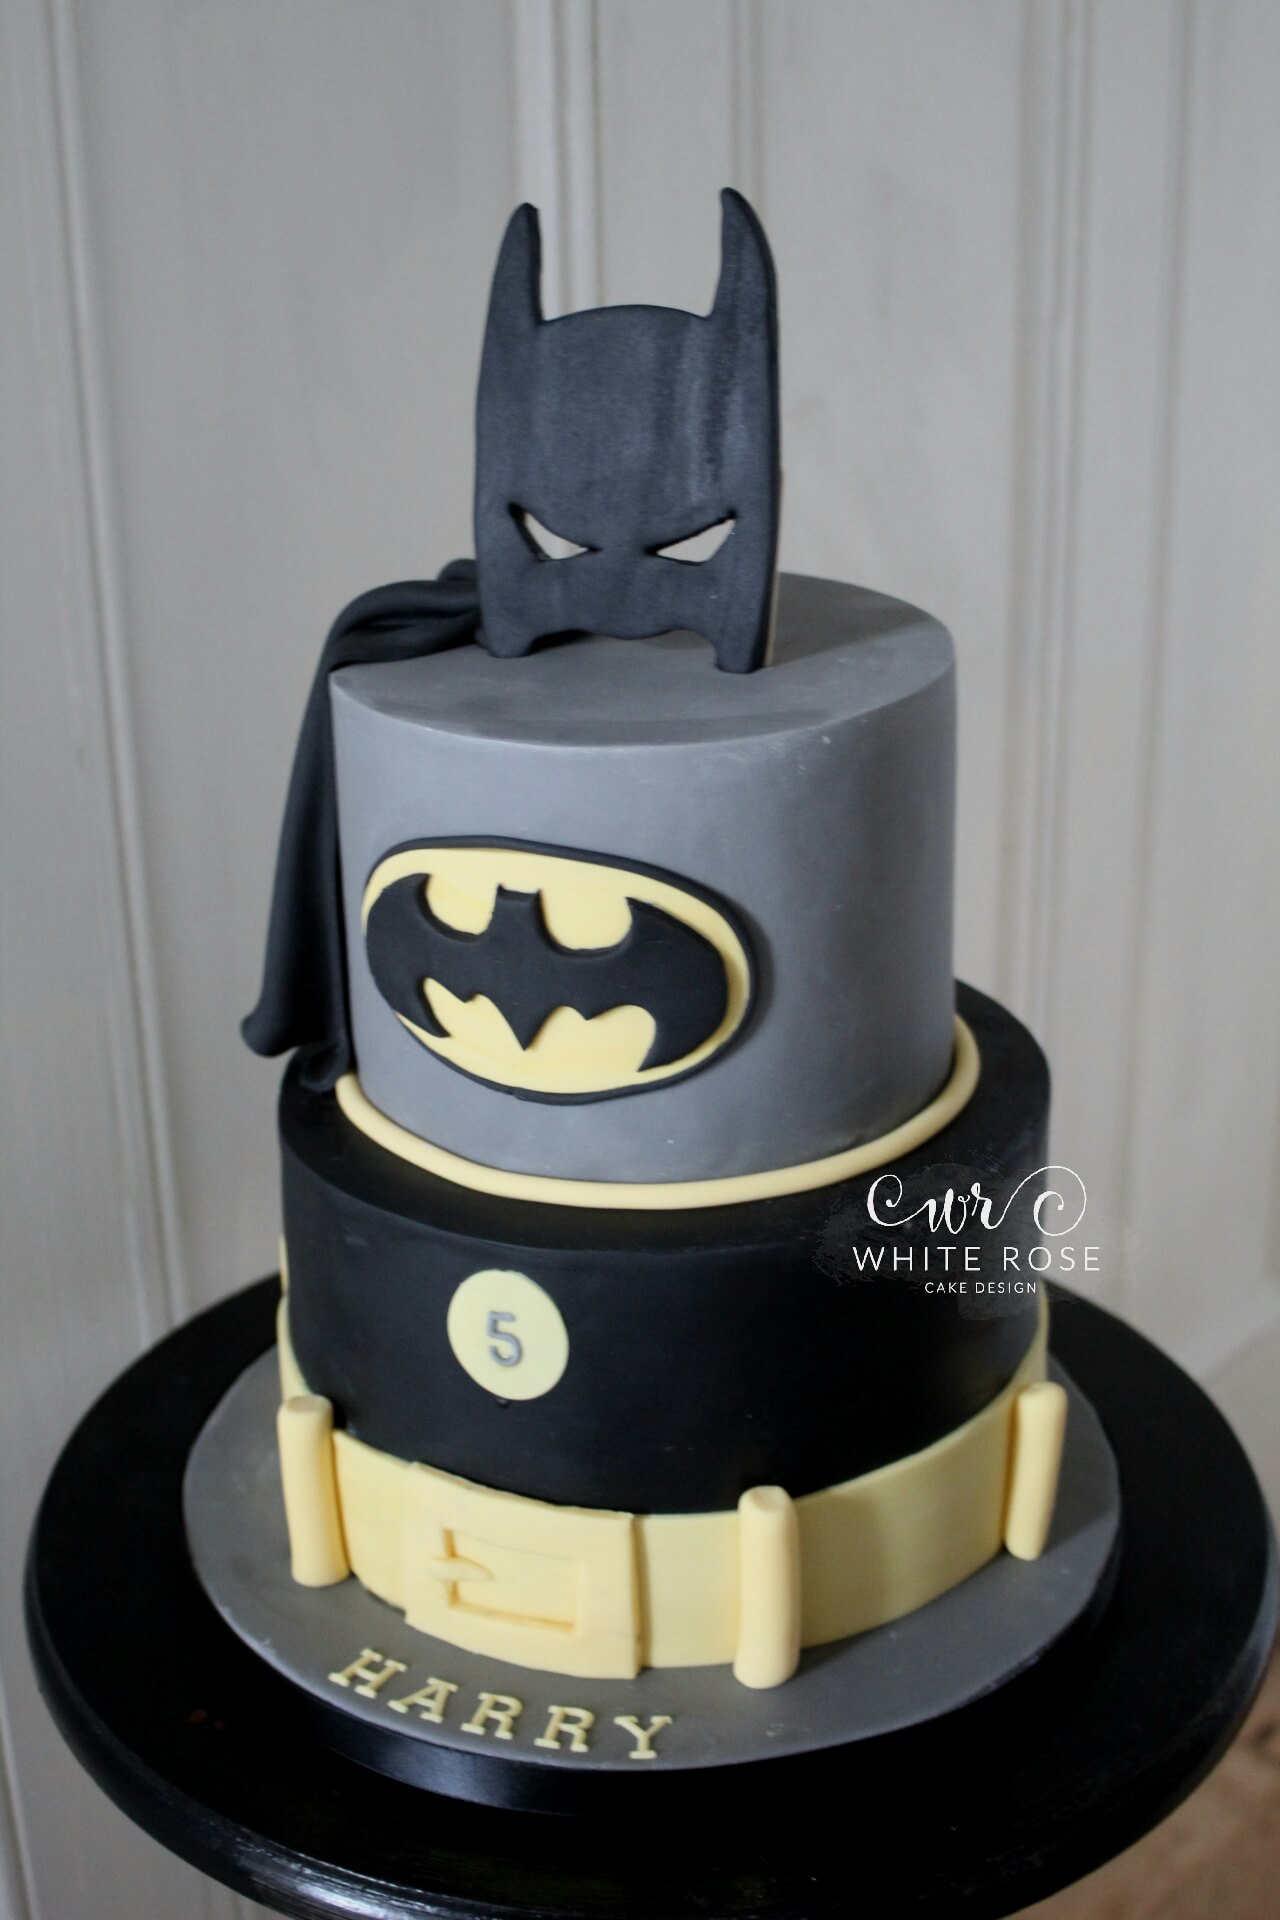 Batman Themed Birthday Cake by White Rose Cake Design in West Yorkshire Cake Maker 5th Birthday